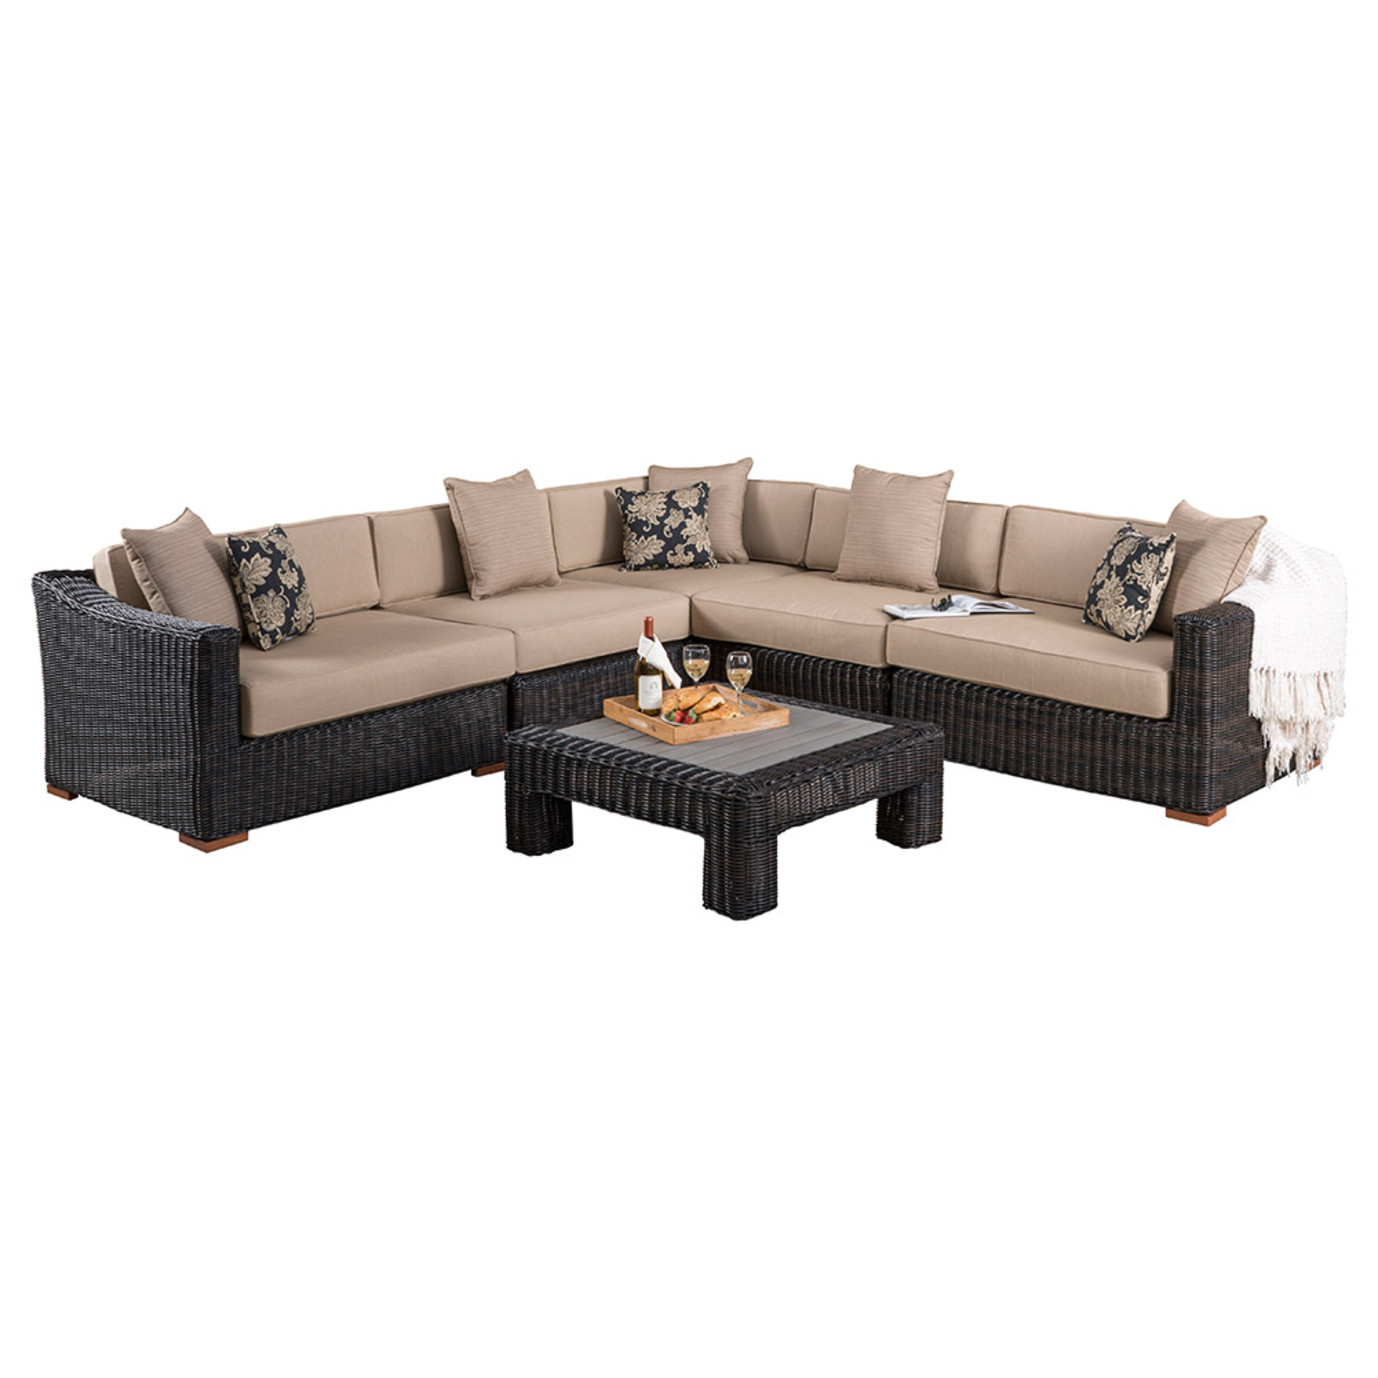 Resort™ 6pc Sectional & Table Set - Espresso/Heather Beige